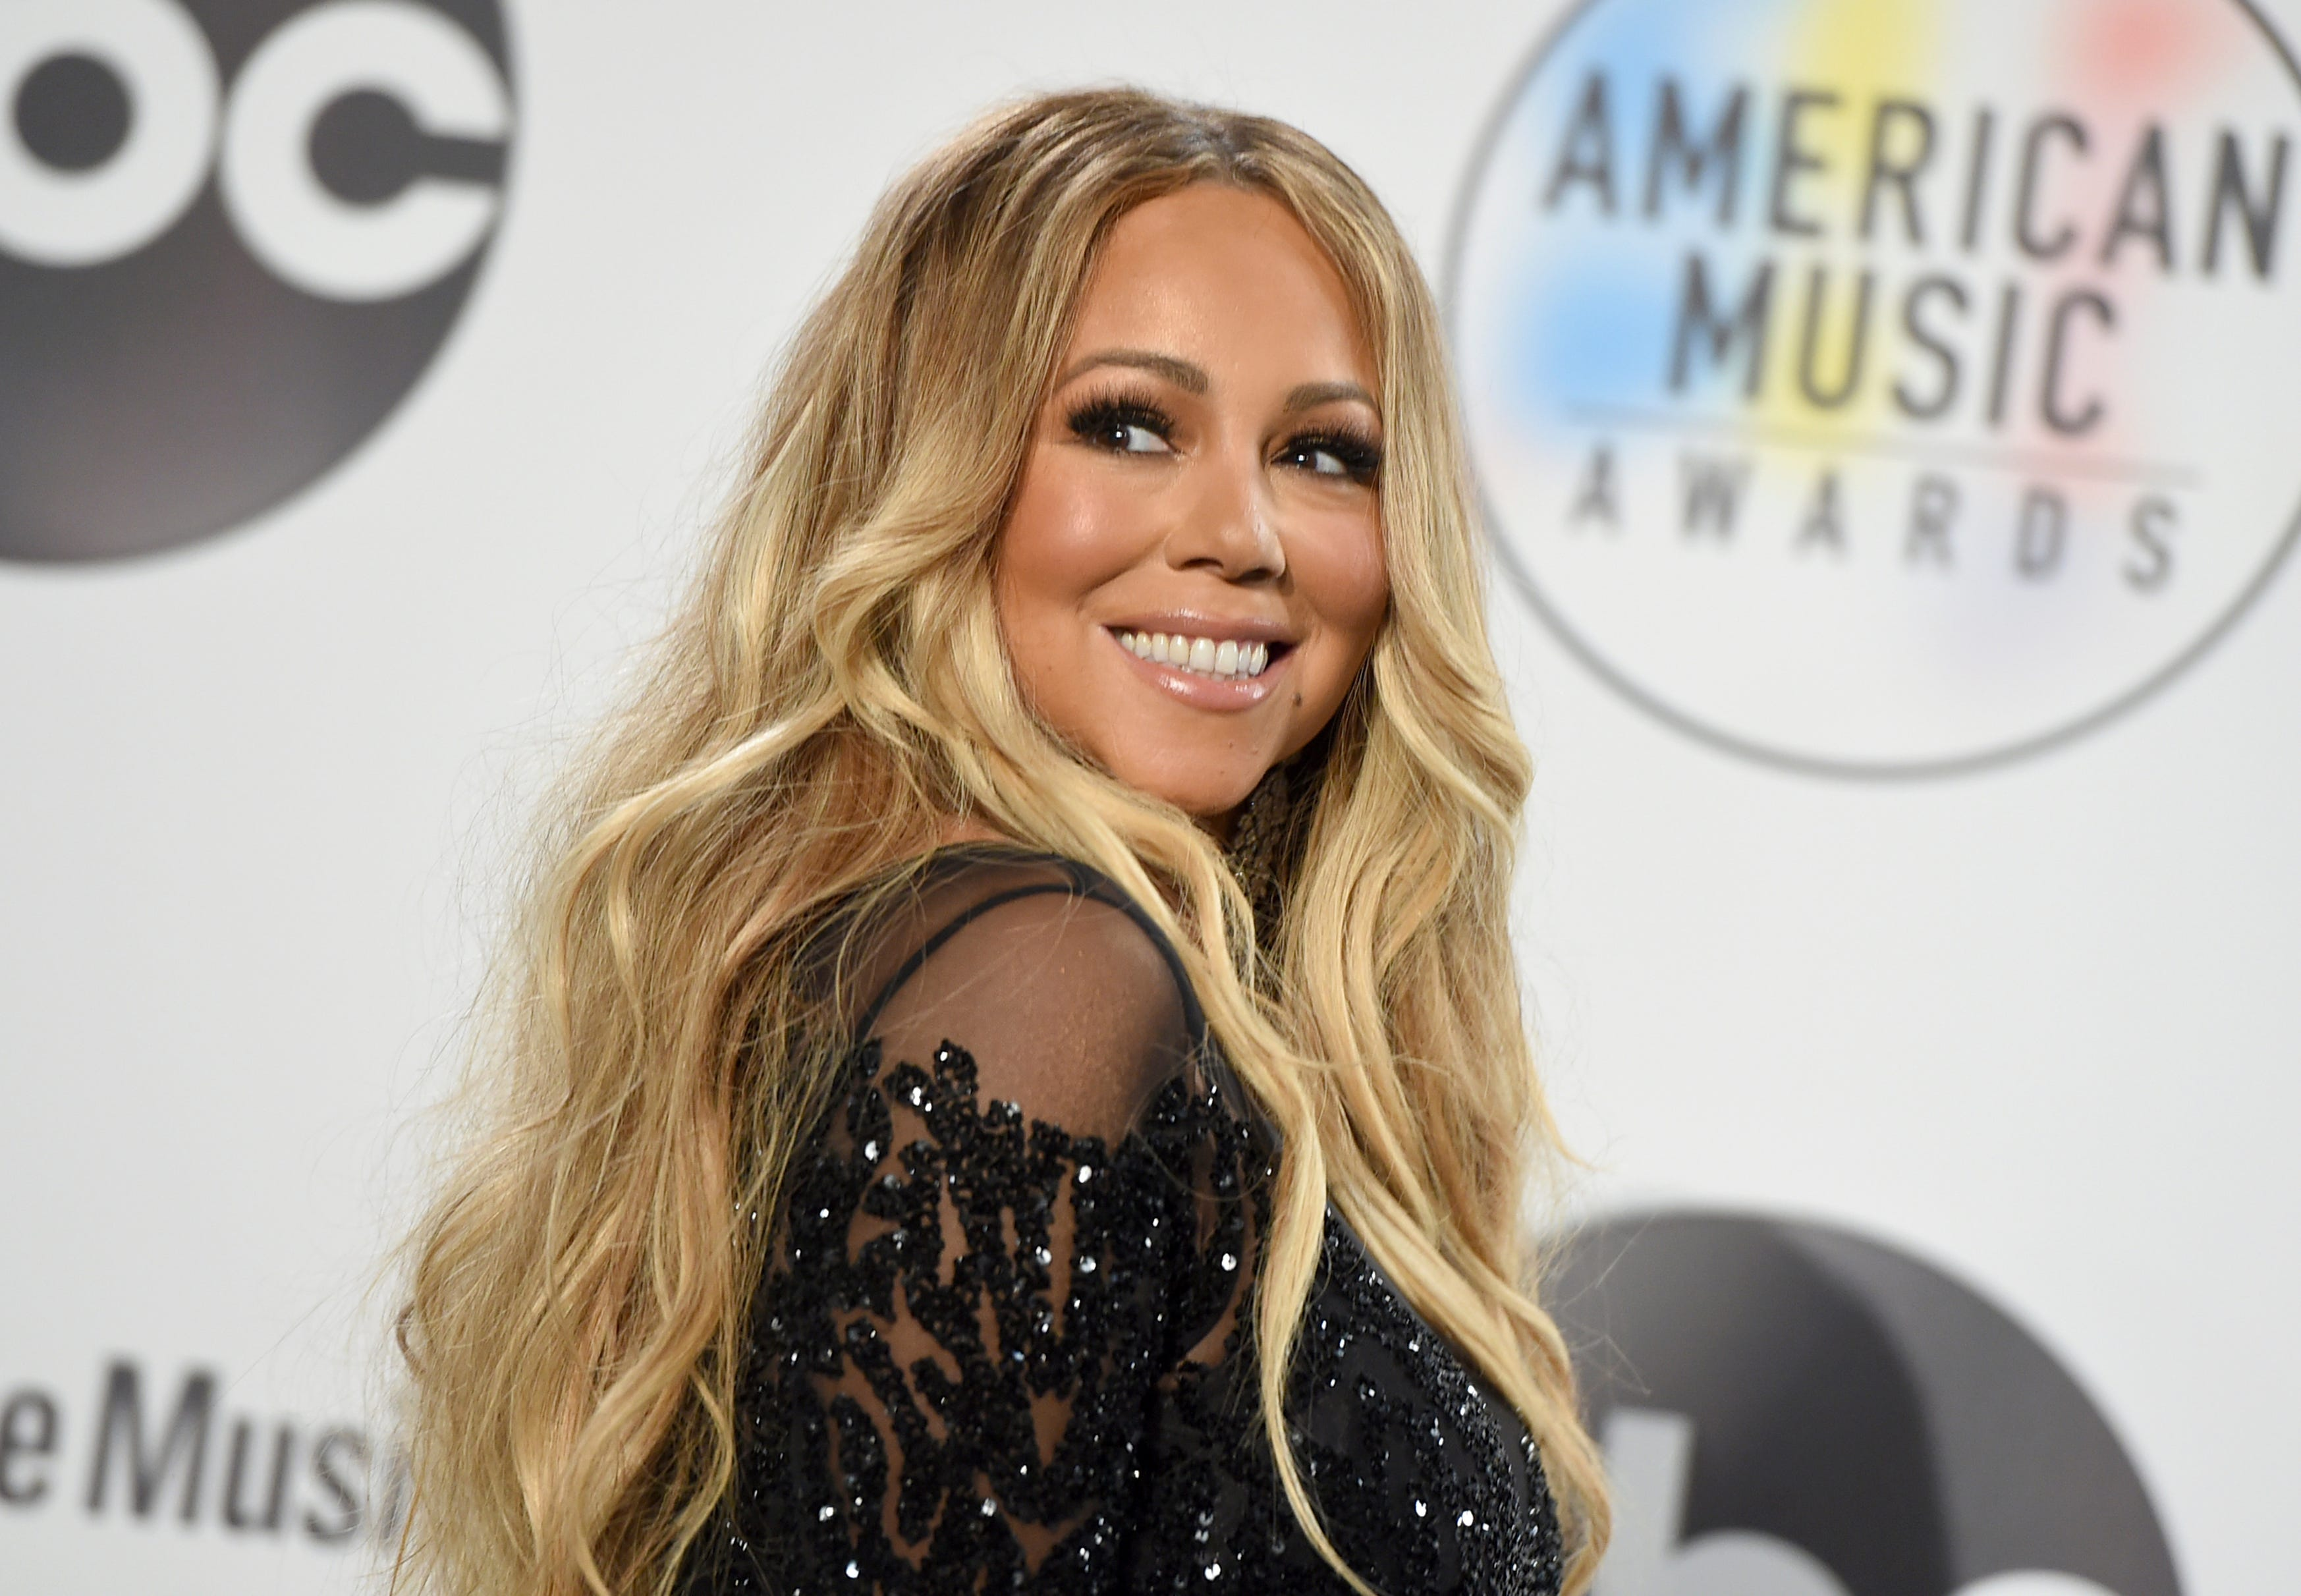 Mariah Carey sues former assistant for allegedly blackmailing her with 'intimate videos'